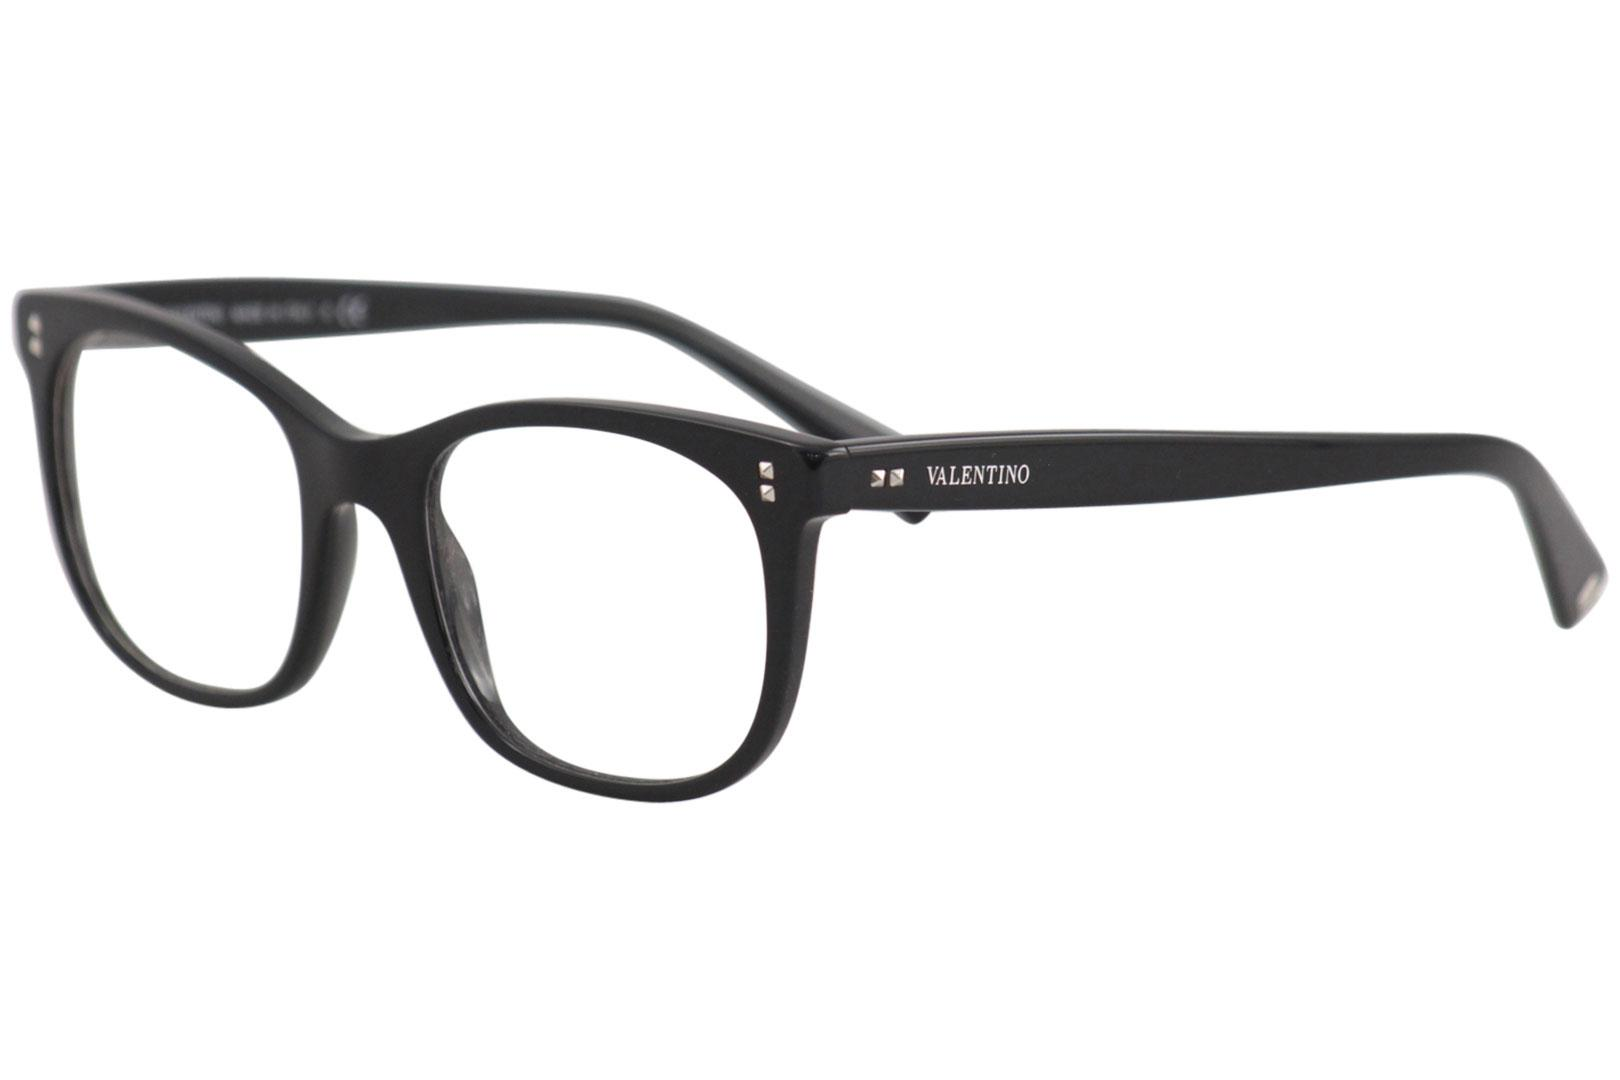 be3c7fb12bb7 Valentino Women s Eyeglasses VA3010 VA 3010 Full Rim Optical Frame